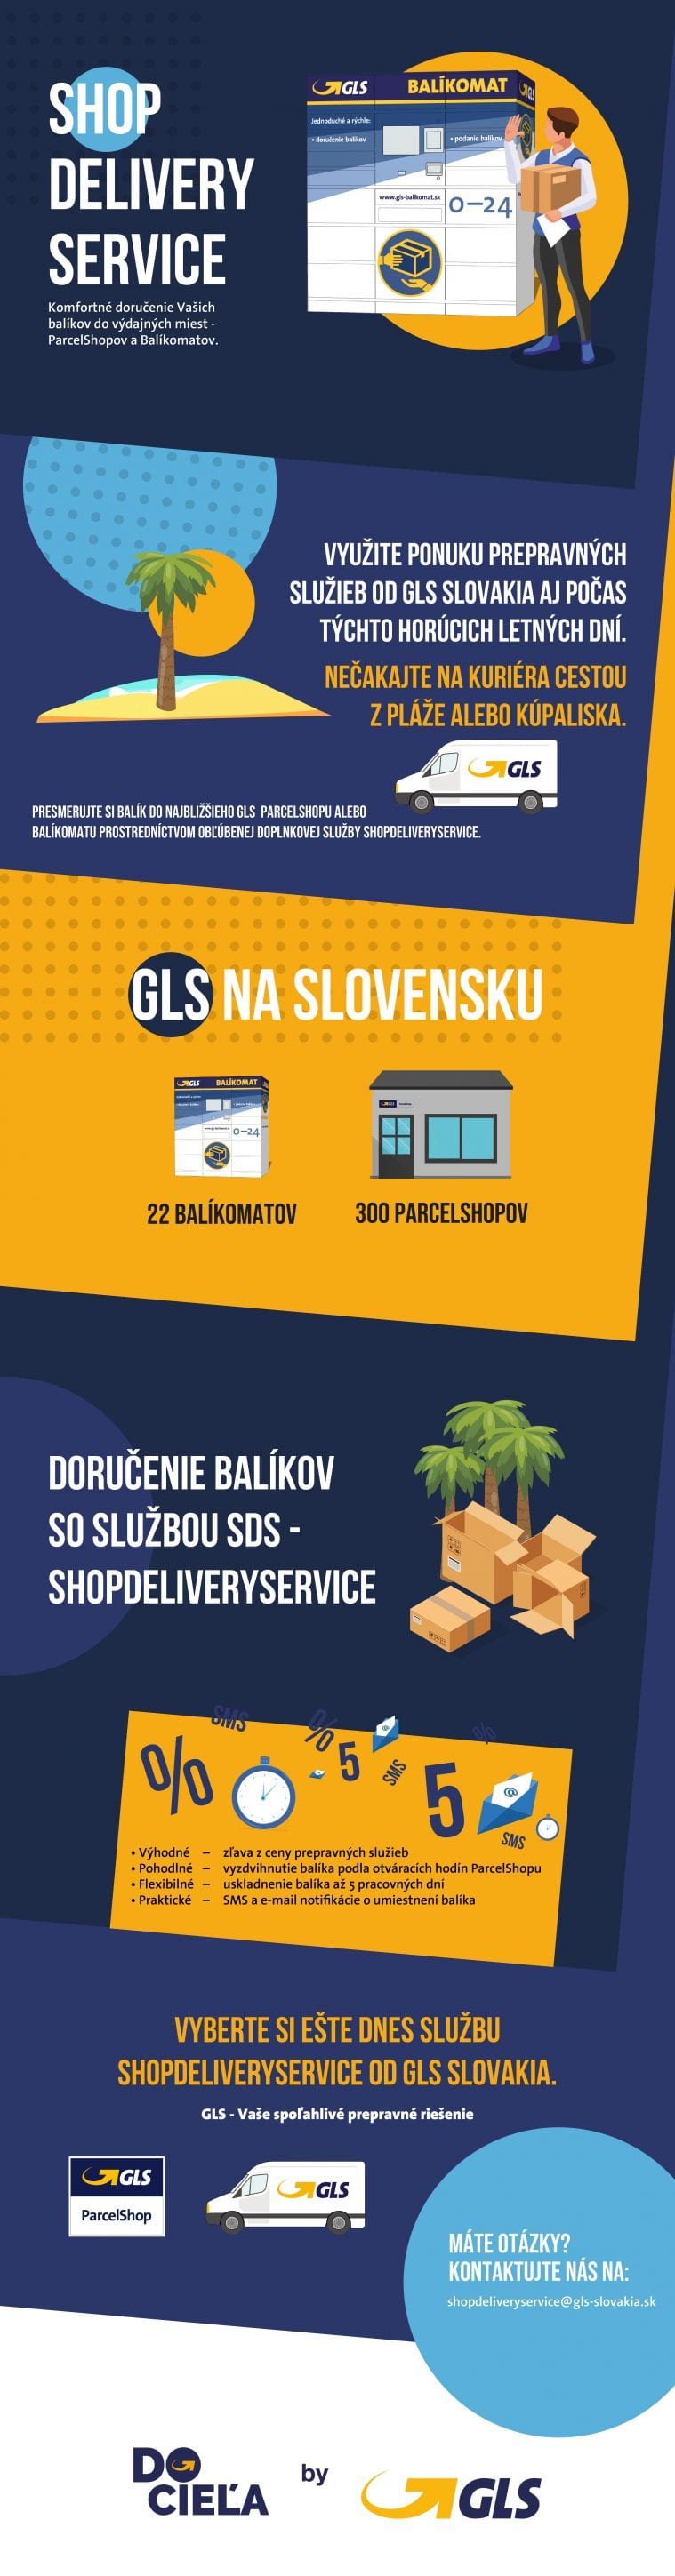 ShopDeliveryService